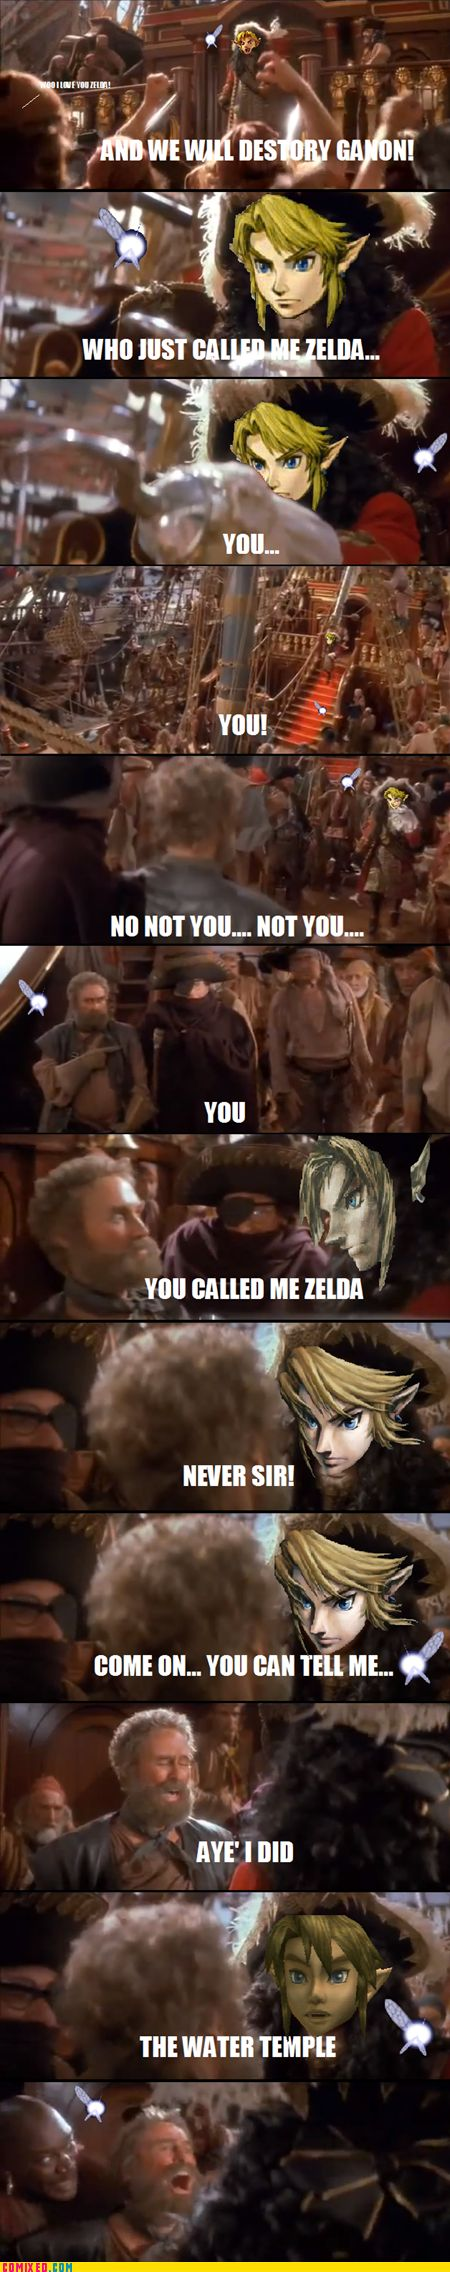 Comixed: Capt'n Link Won't Stand for This  This made me laugh XD